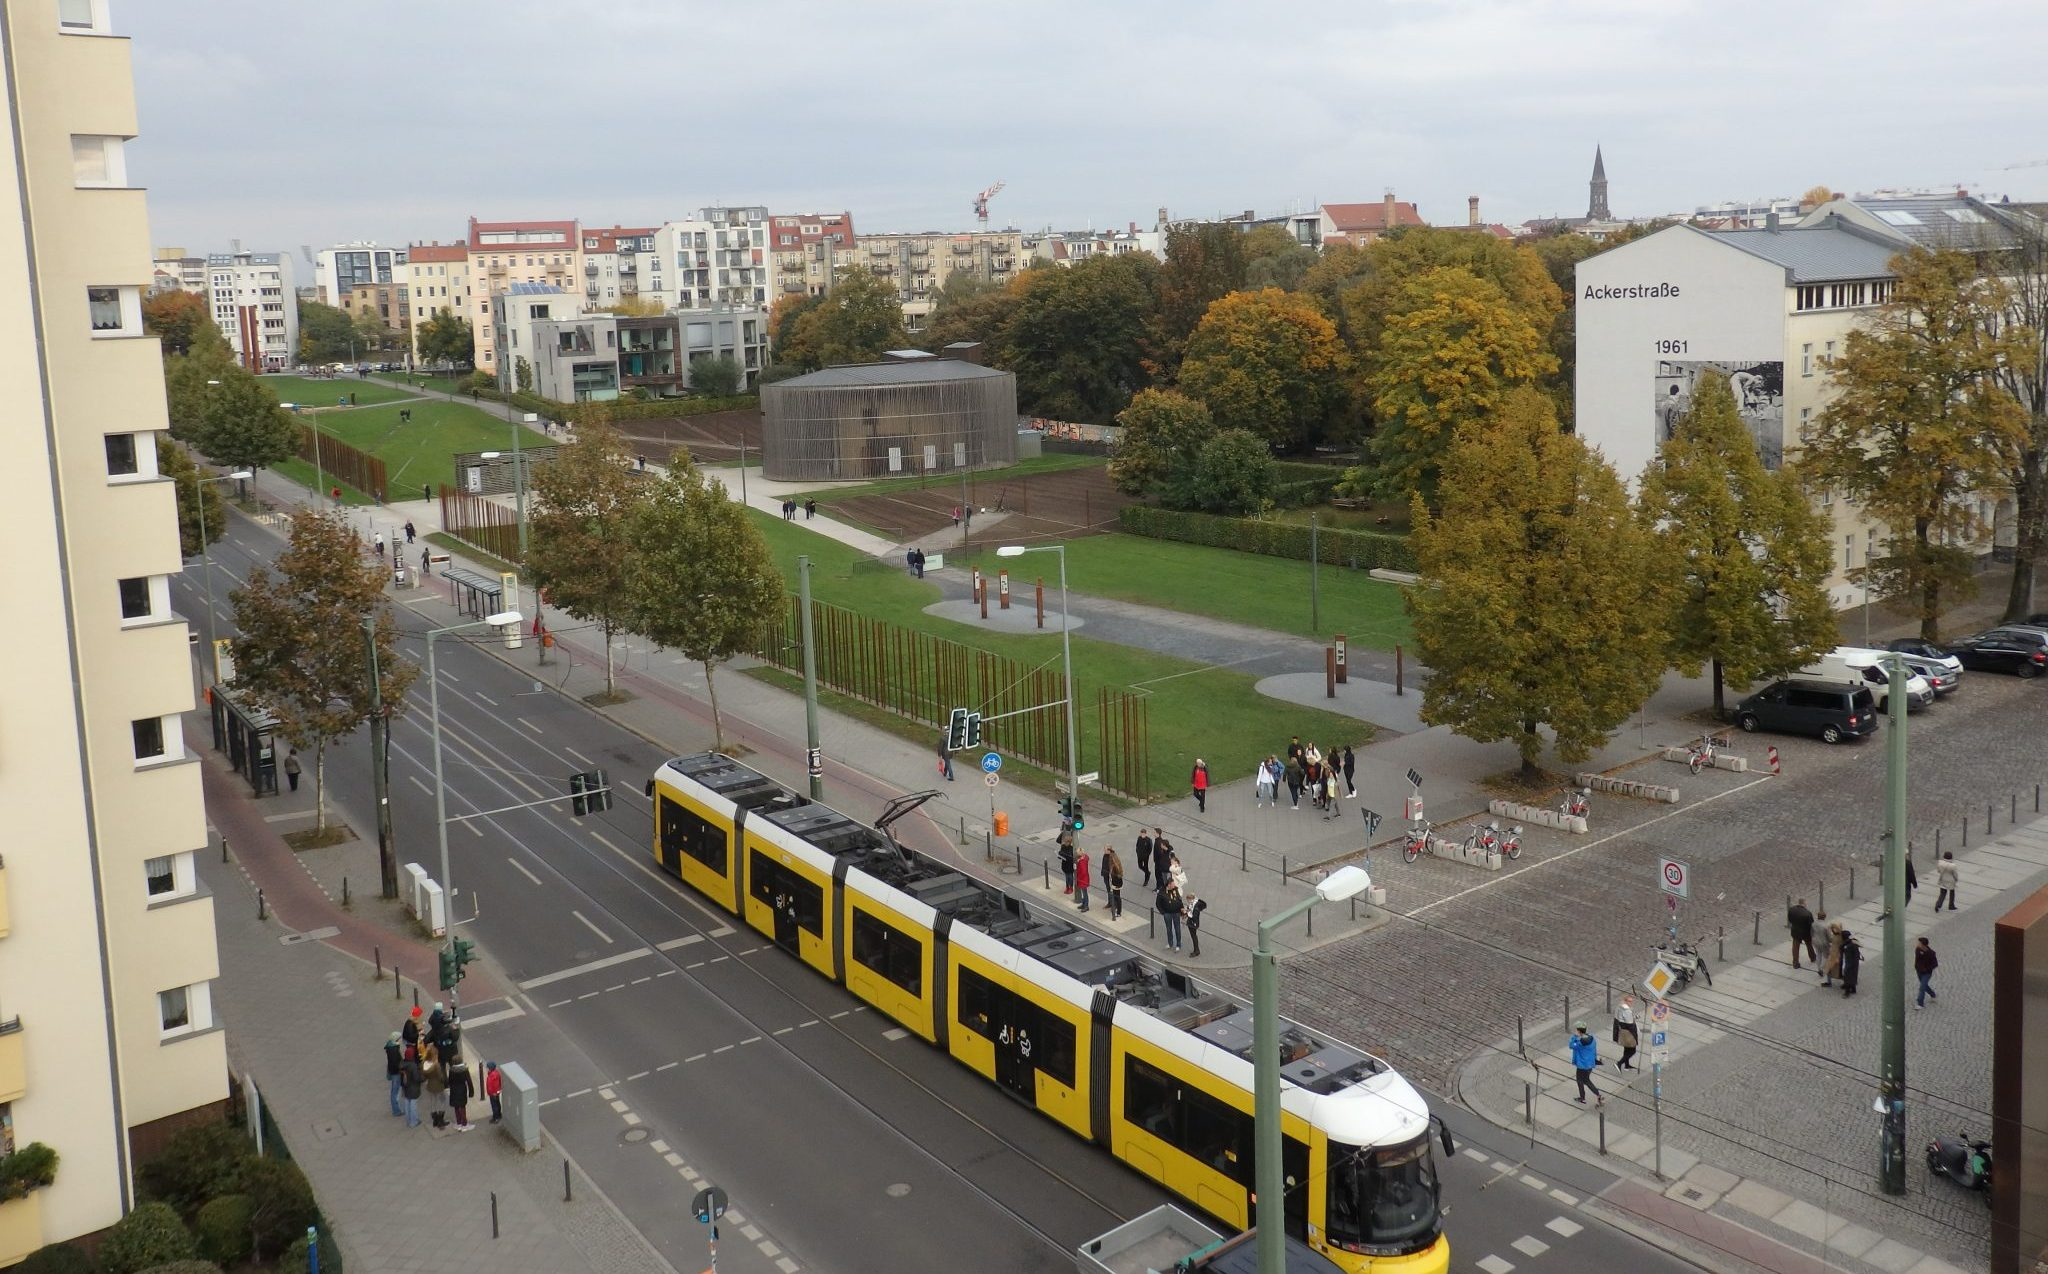 In this view, you can see a section of the Berlin Wall Memorial.